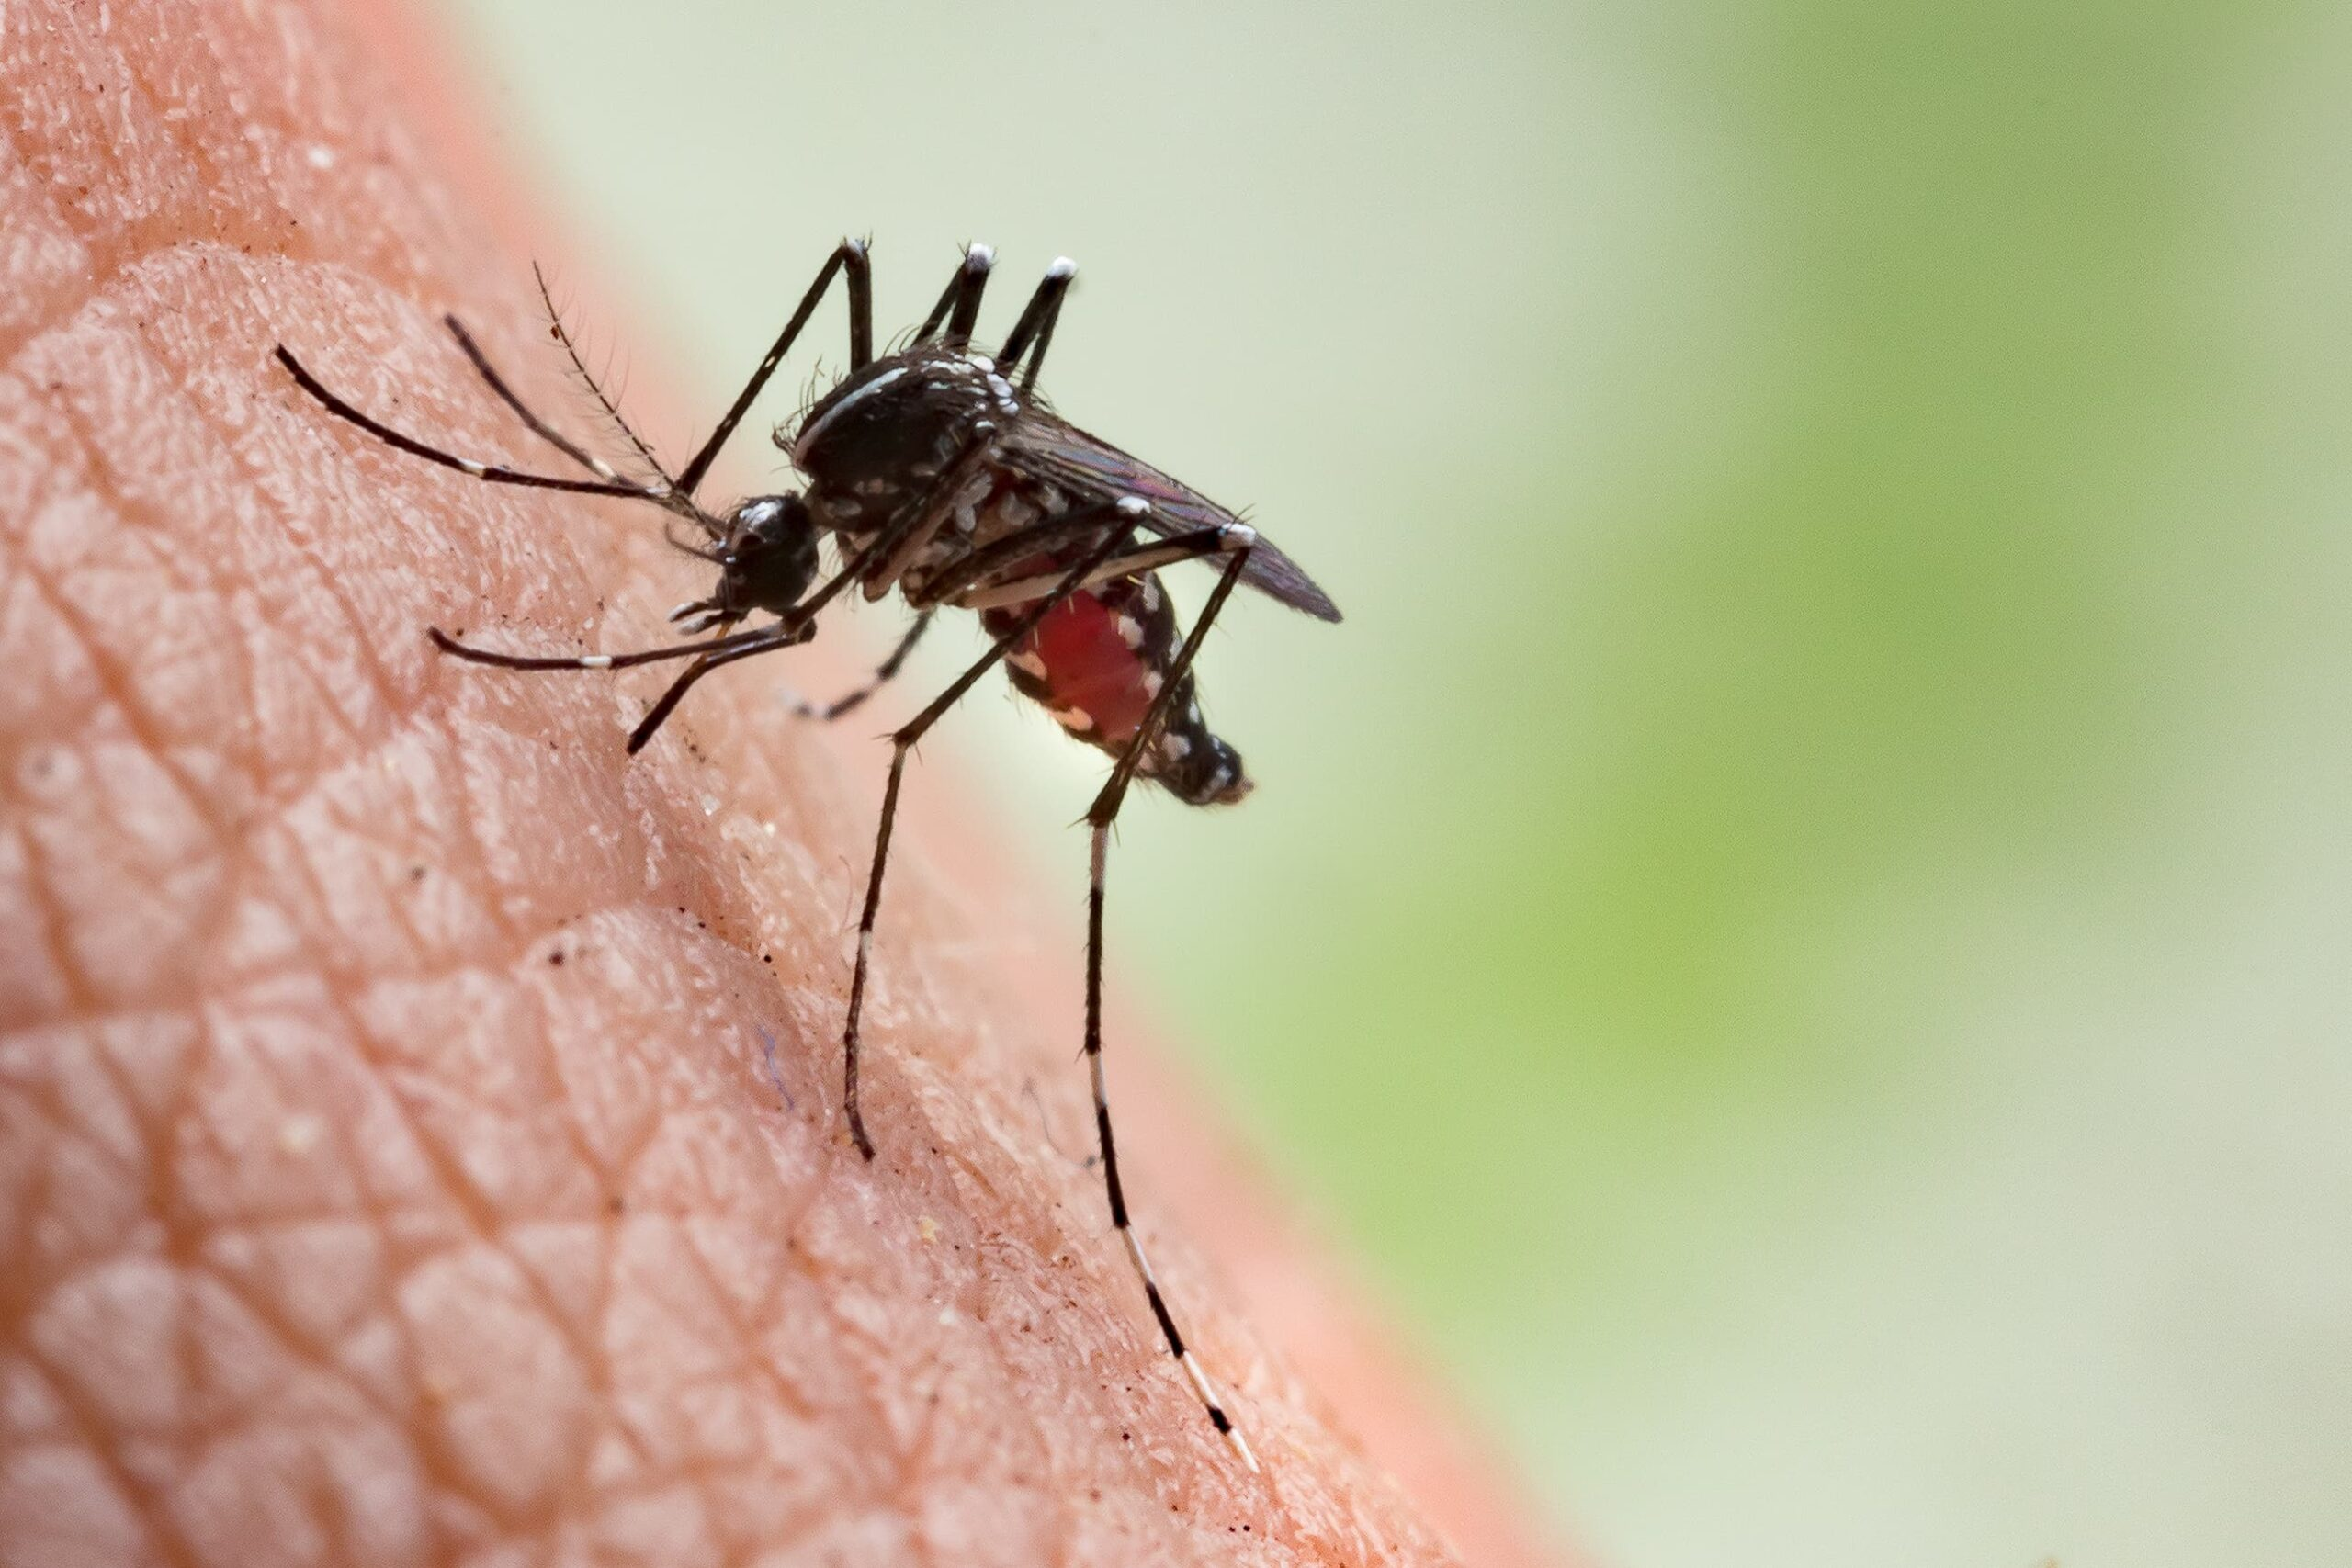 World Mosquito Day: 6 tips to avoid being bitten